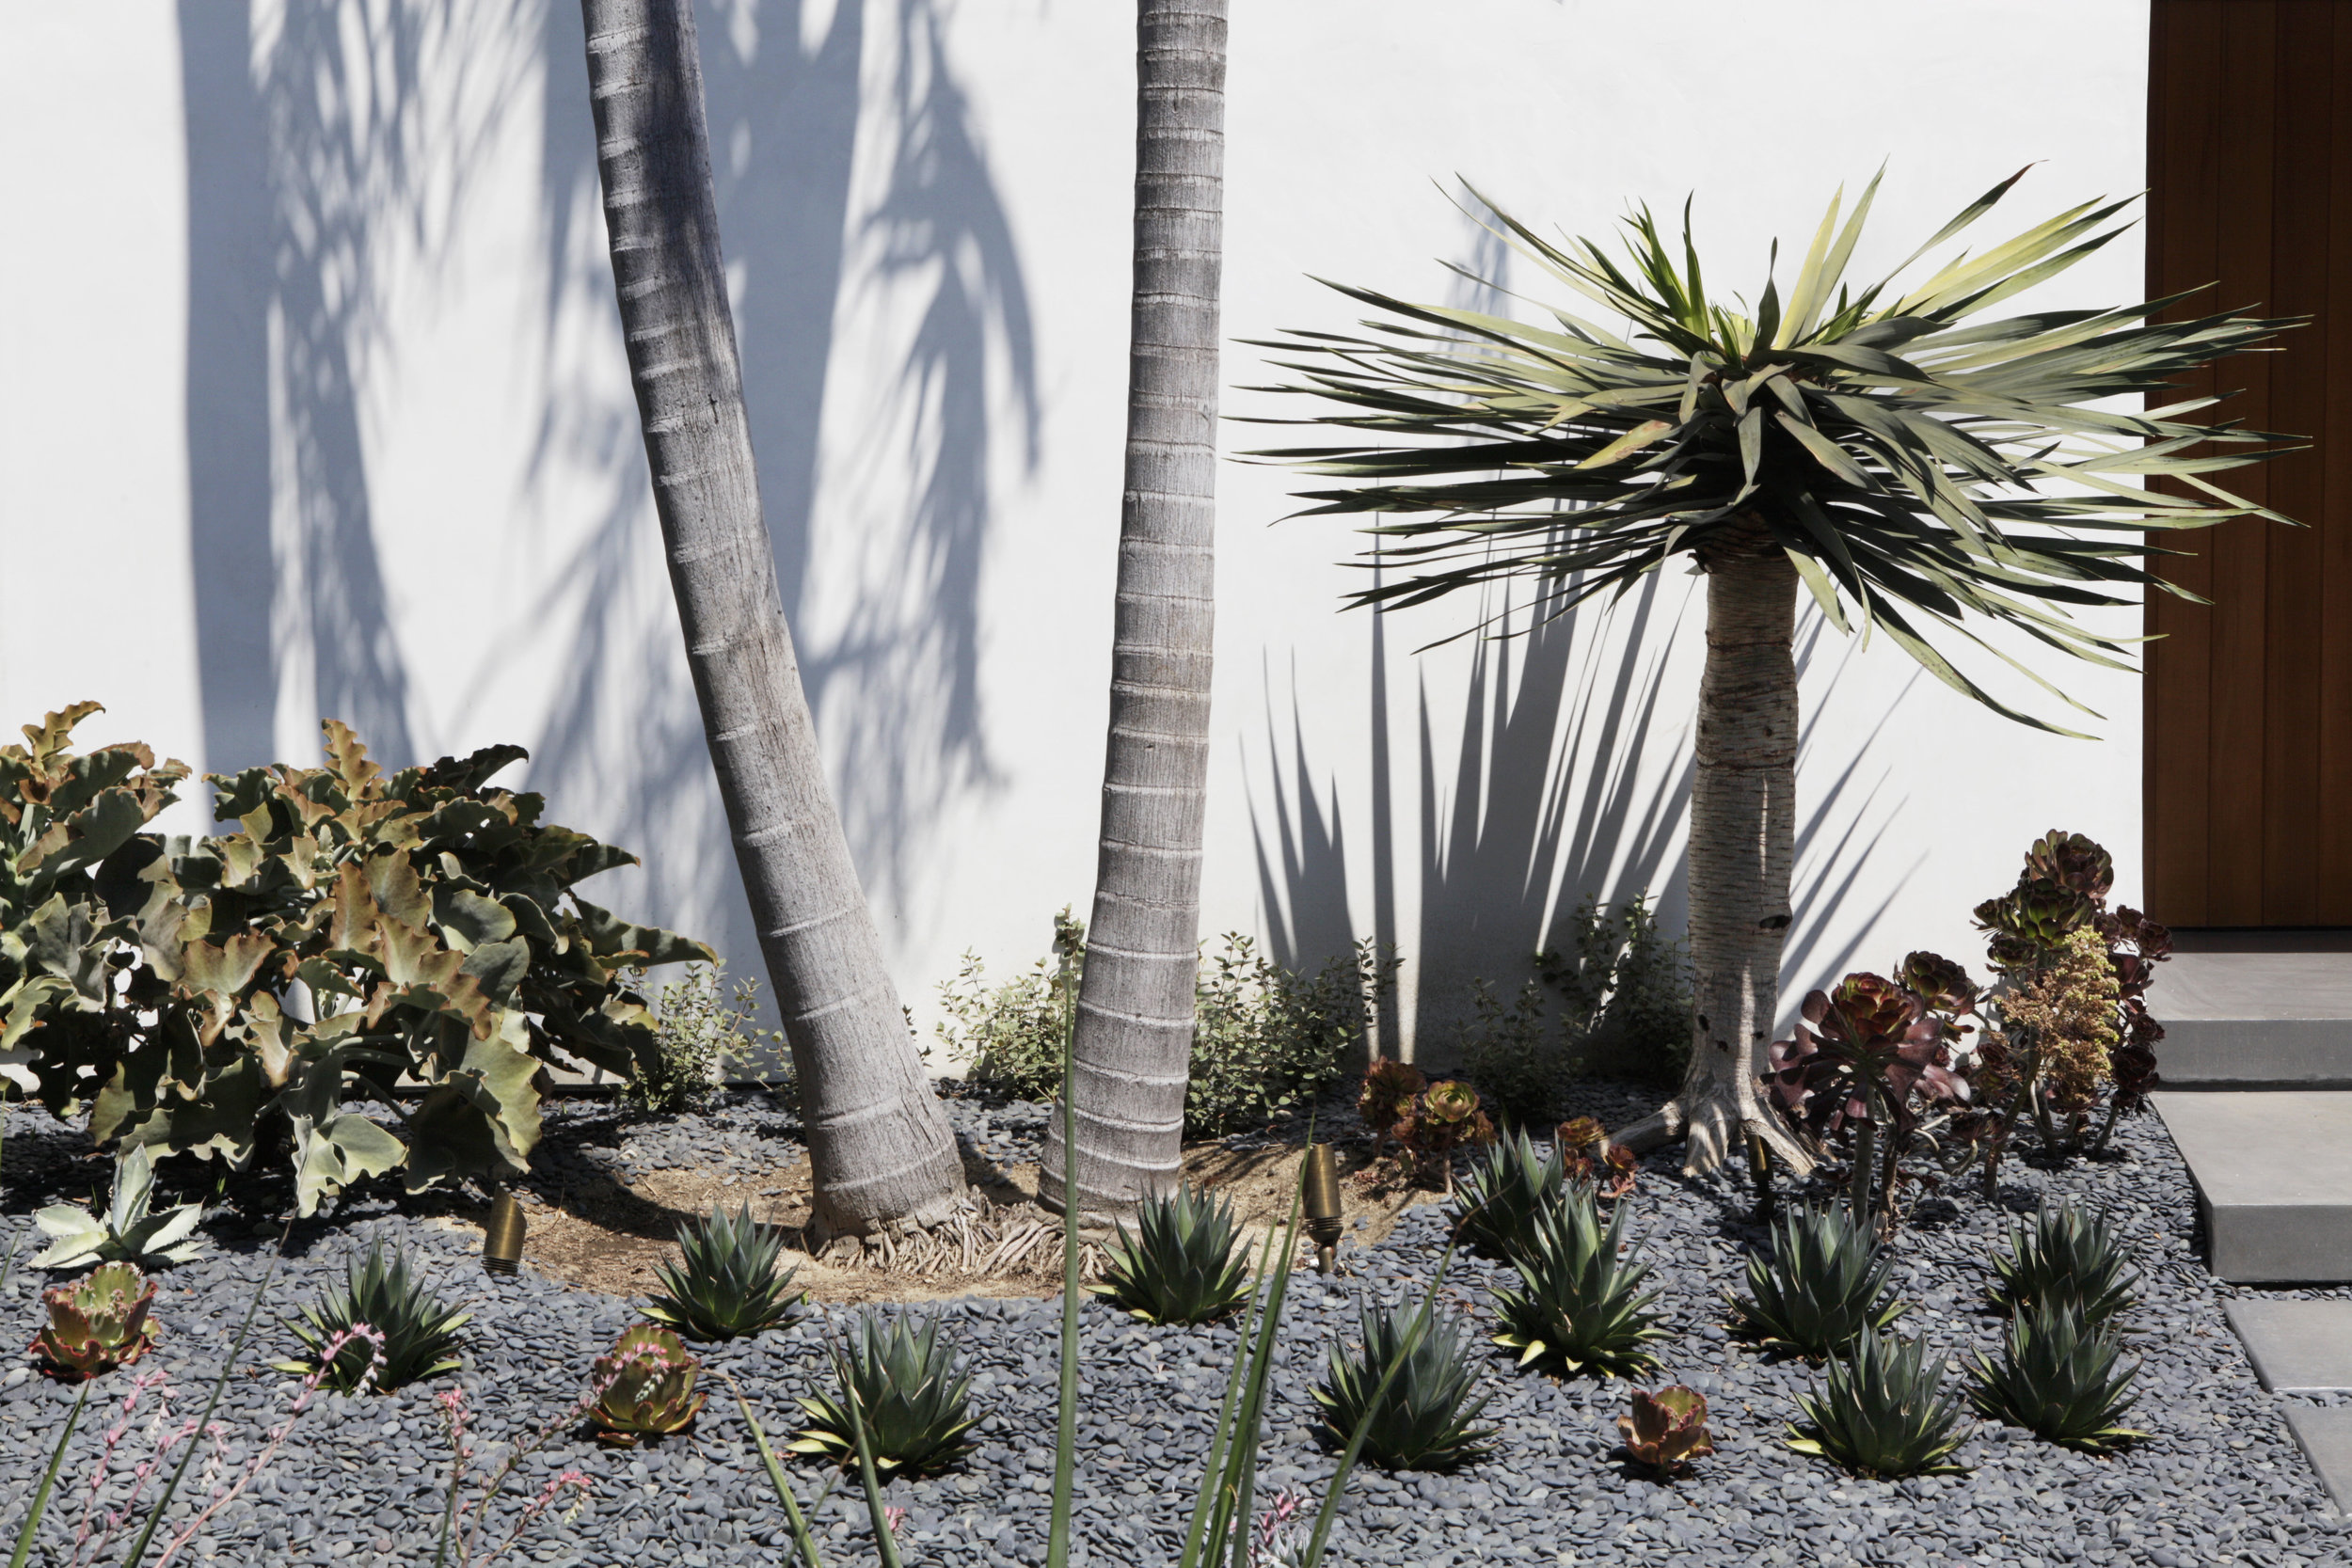 palm trees and succulents   - Drought tolerant moroccan inspired xeriscape West Hollywood walled garden hedge house - Los Angeles garden design by Campion Walker Landscapes